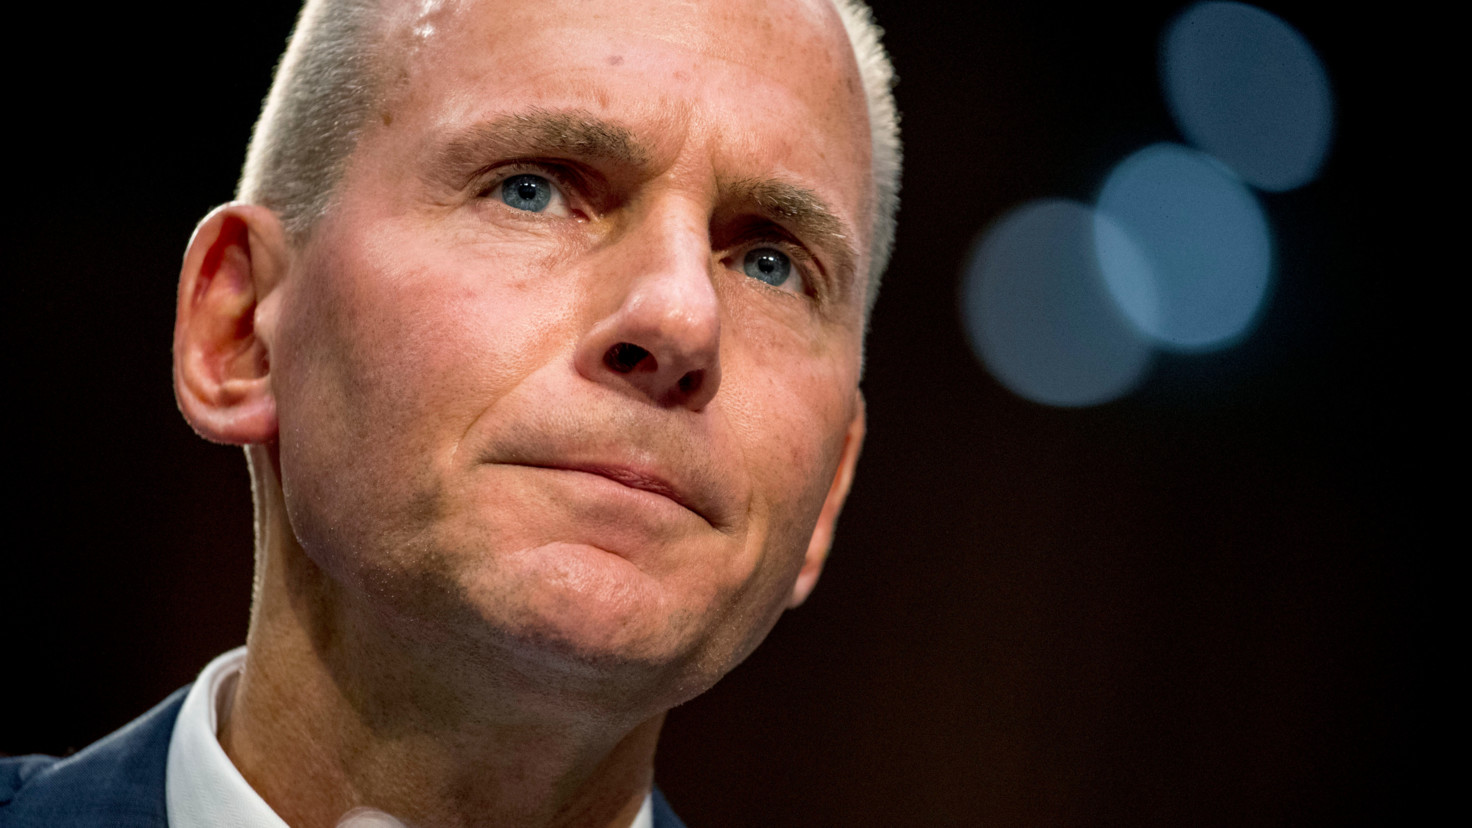 Boeing fires CEO over scandal